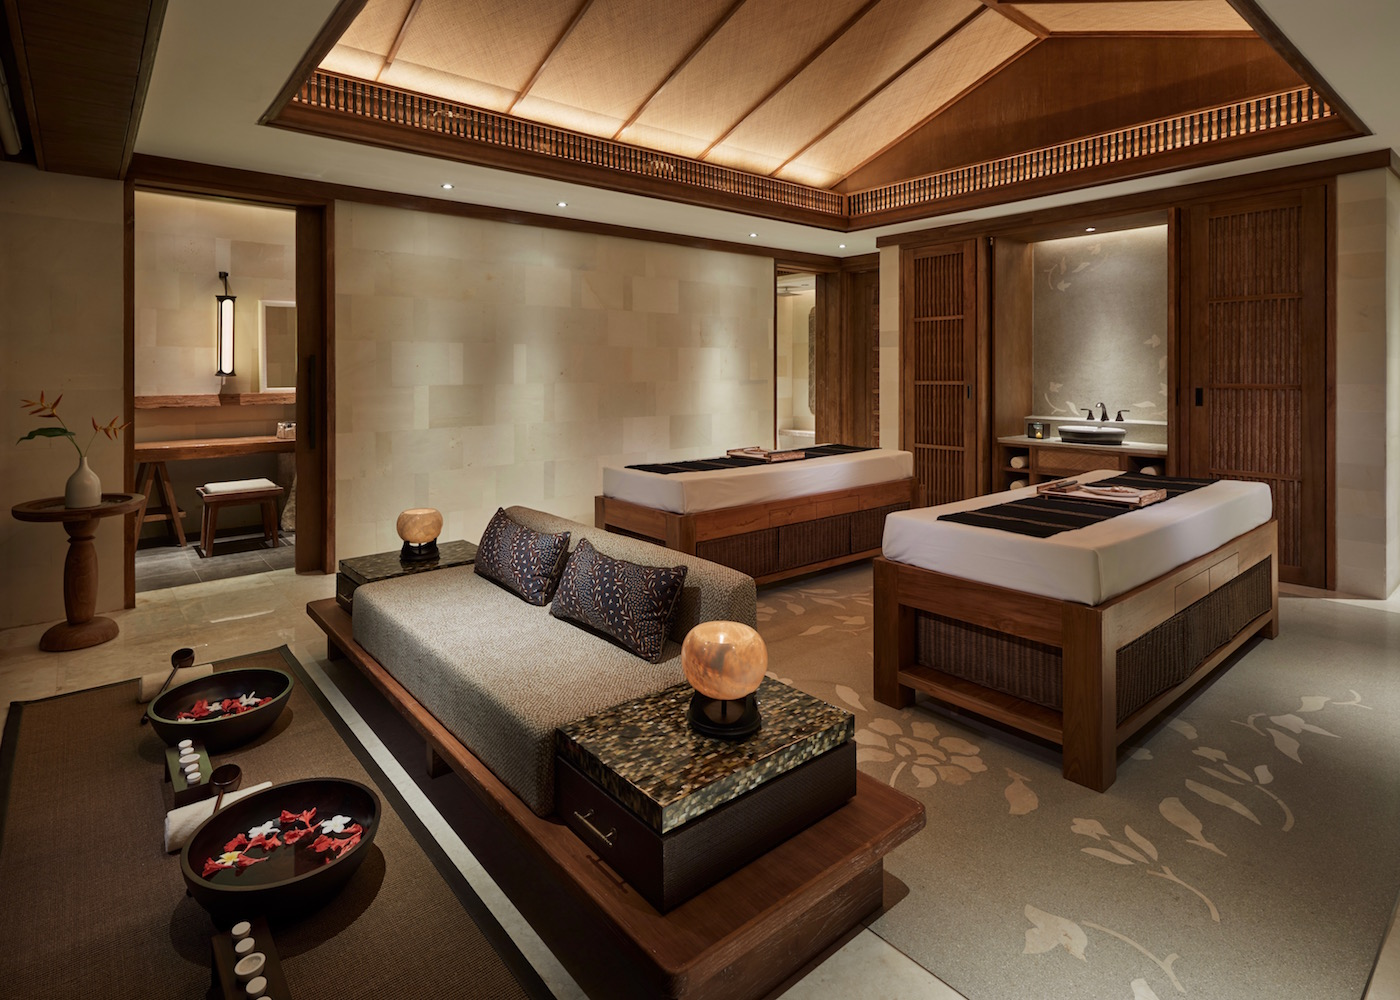 Shankha Spa at Hyatt Regency Bali in Sanur - one of the best wellness destinations in Indonesia